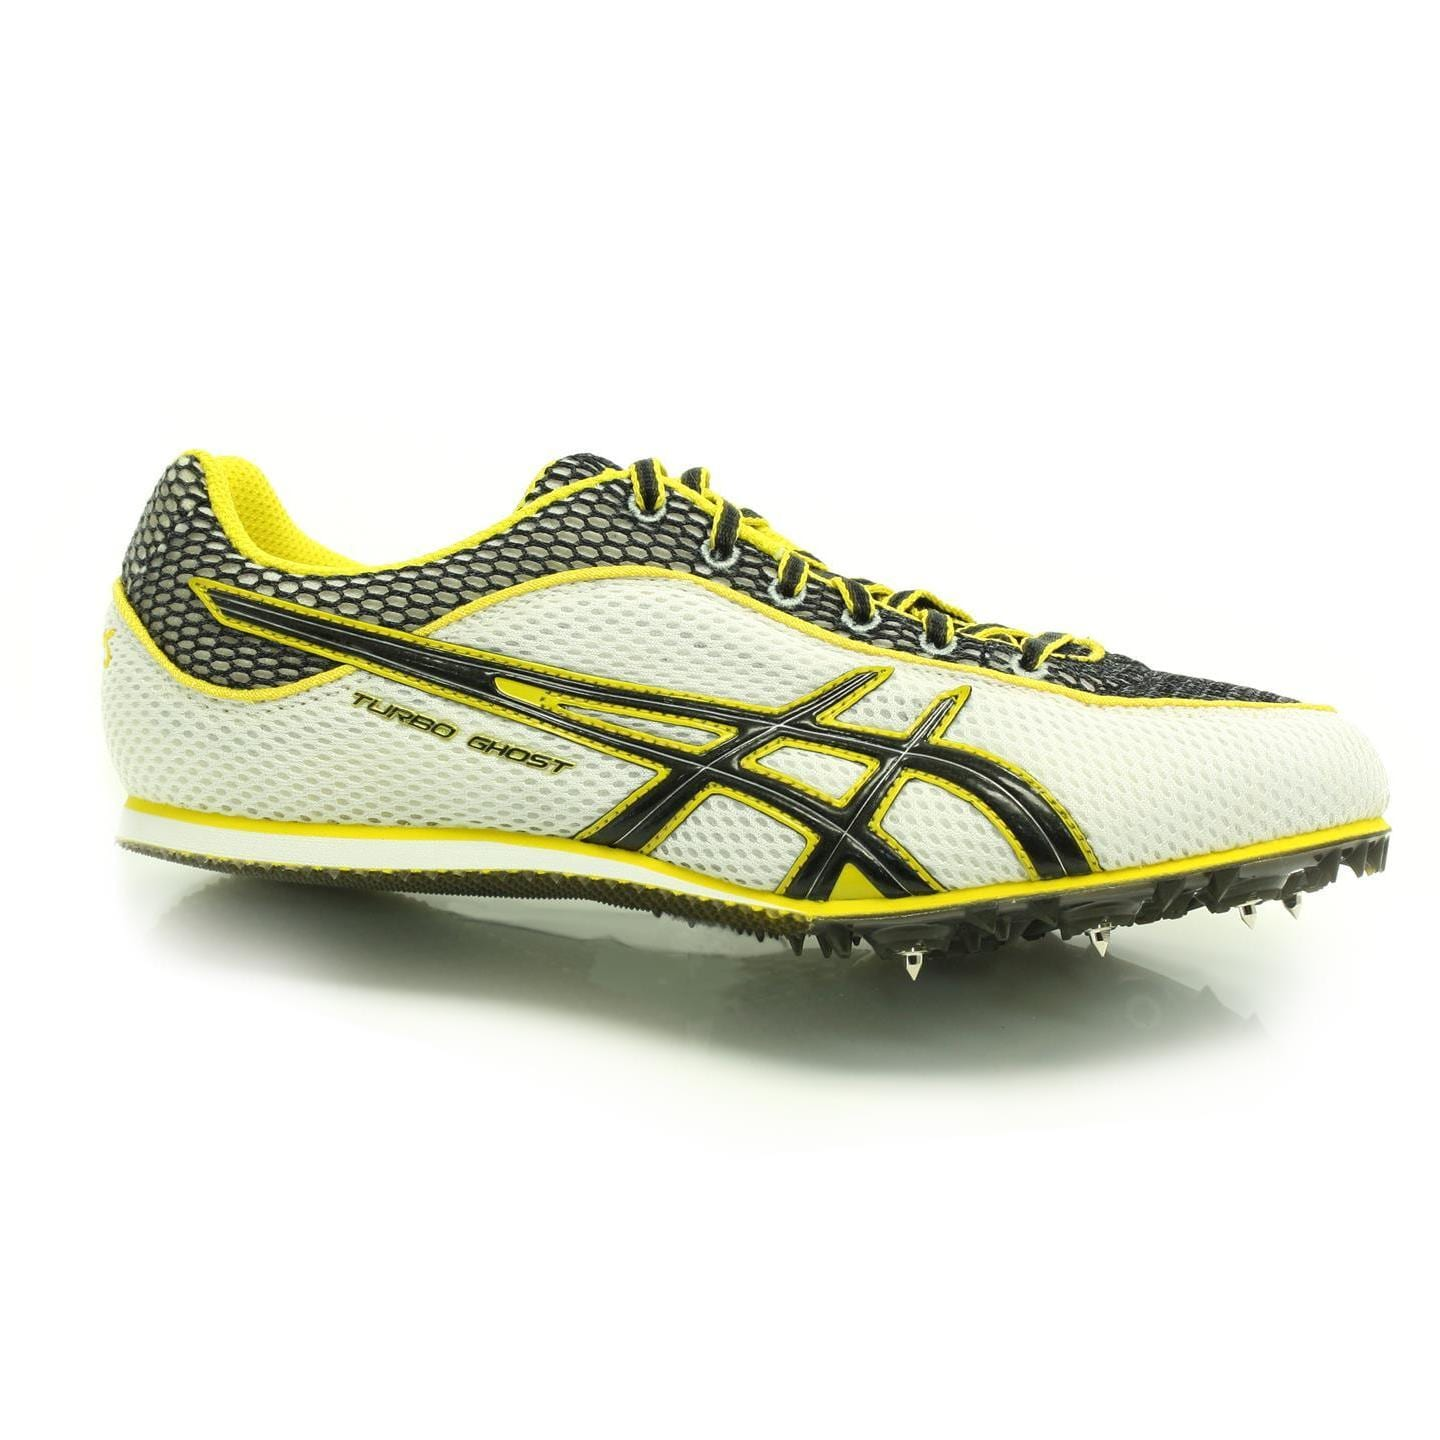 deafbabad215 Shop ASICS G003N 0190 Mens Turbo Ghost 3 Track Spikes White  Black  Yellow  - Free Shipping On Orders Over  45 - Overstock - 10541939